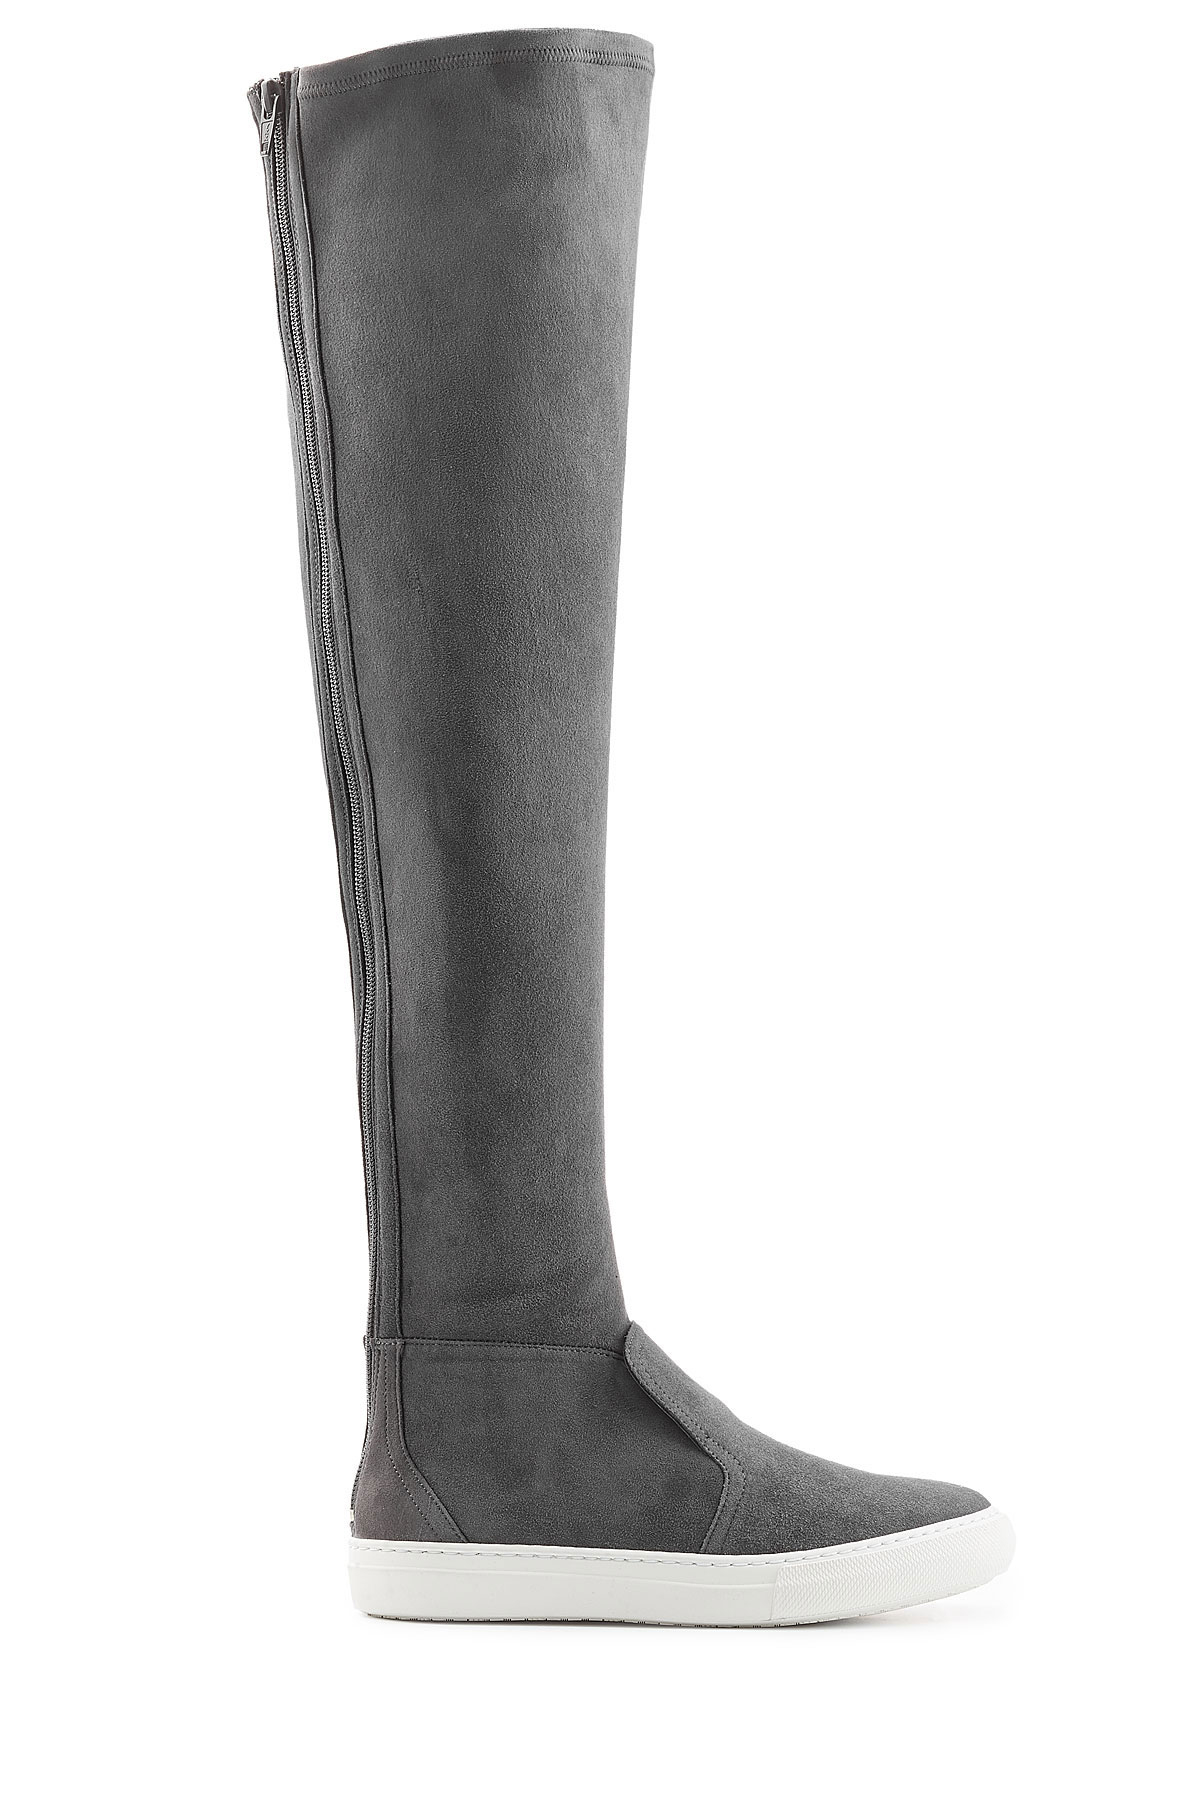 Pierre hardy Suede Over The Knee Boots in Grey